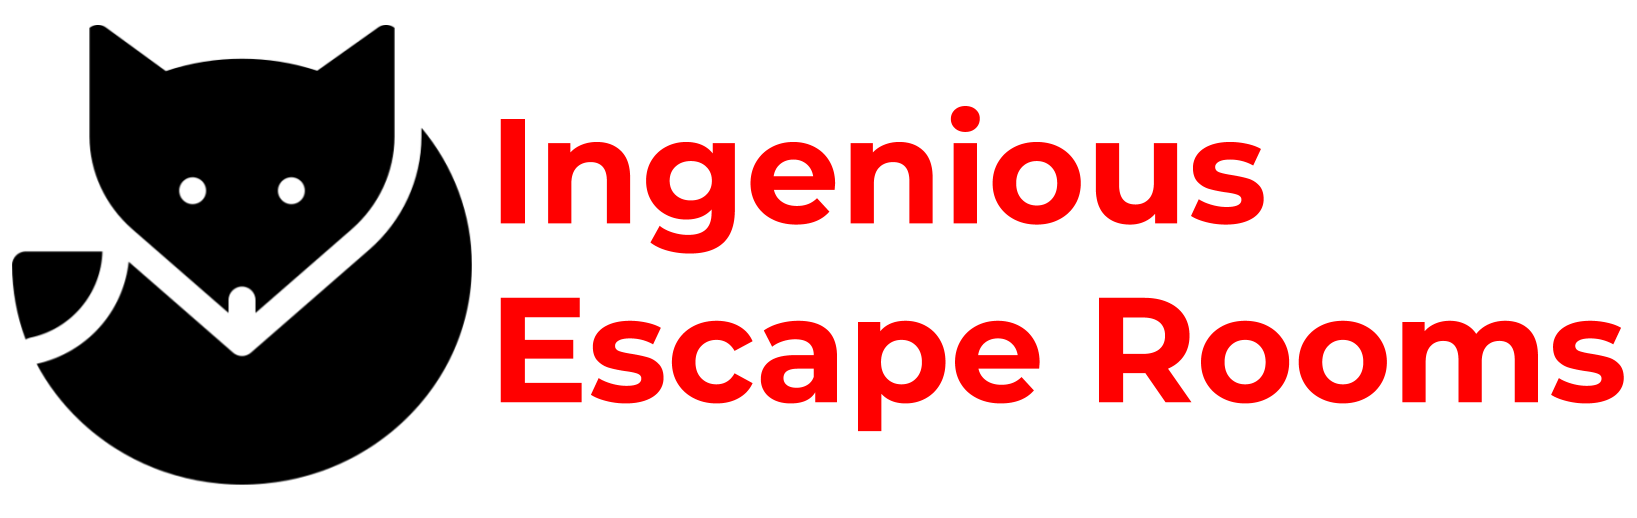 Ingenious Escape Rooms |   Escape rooms highlights